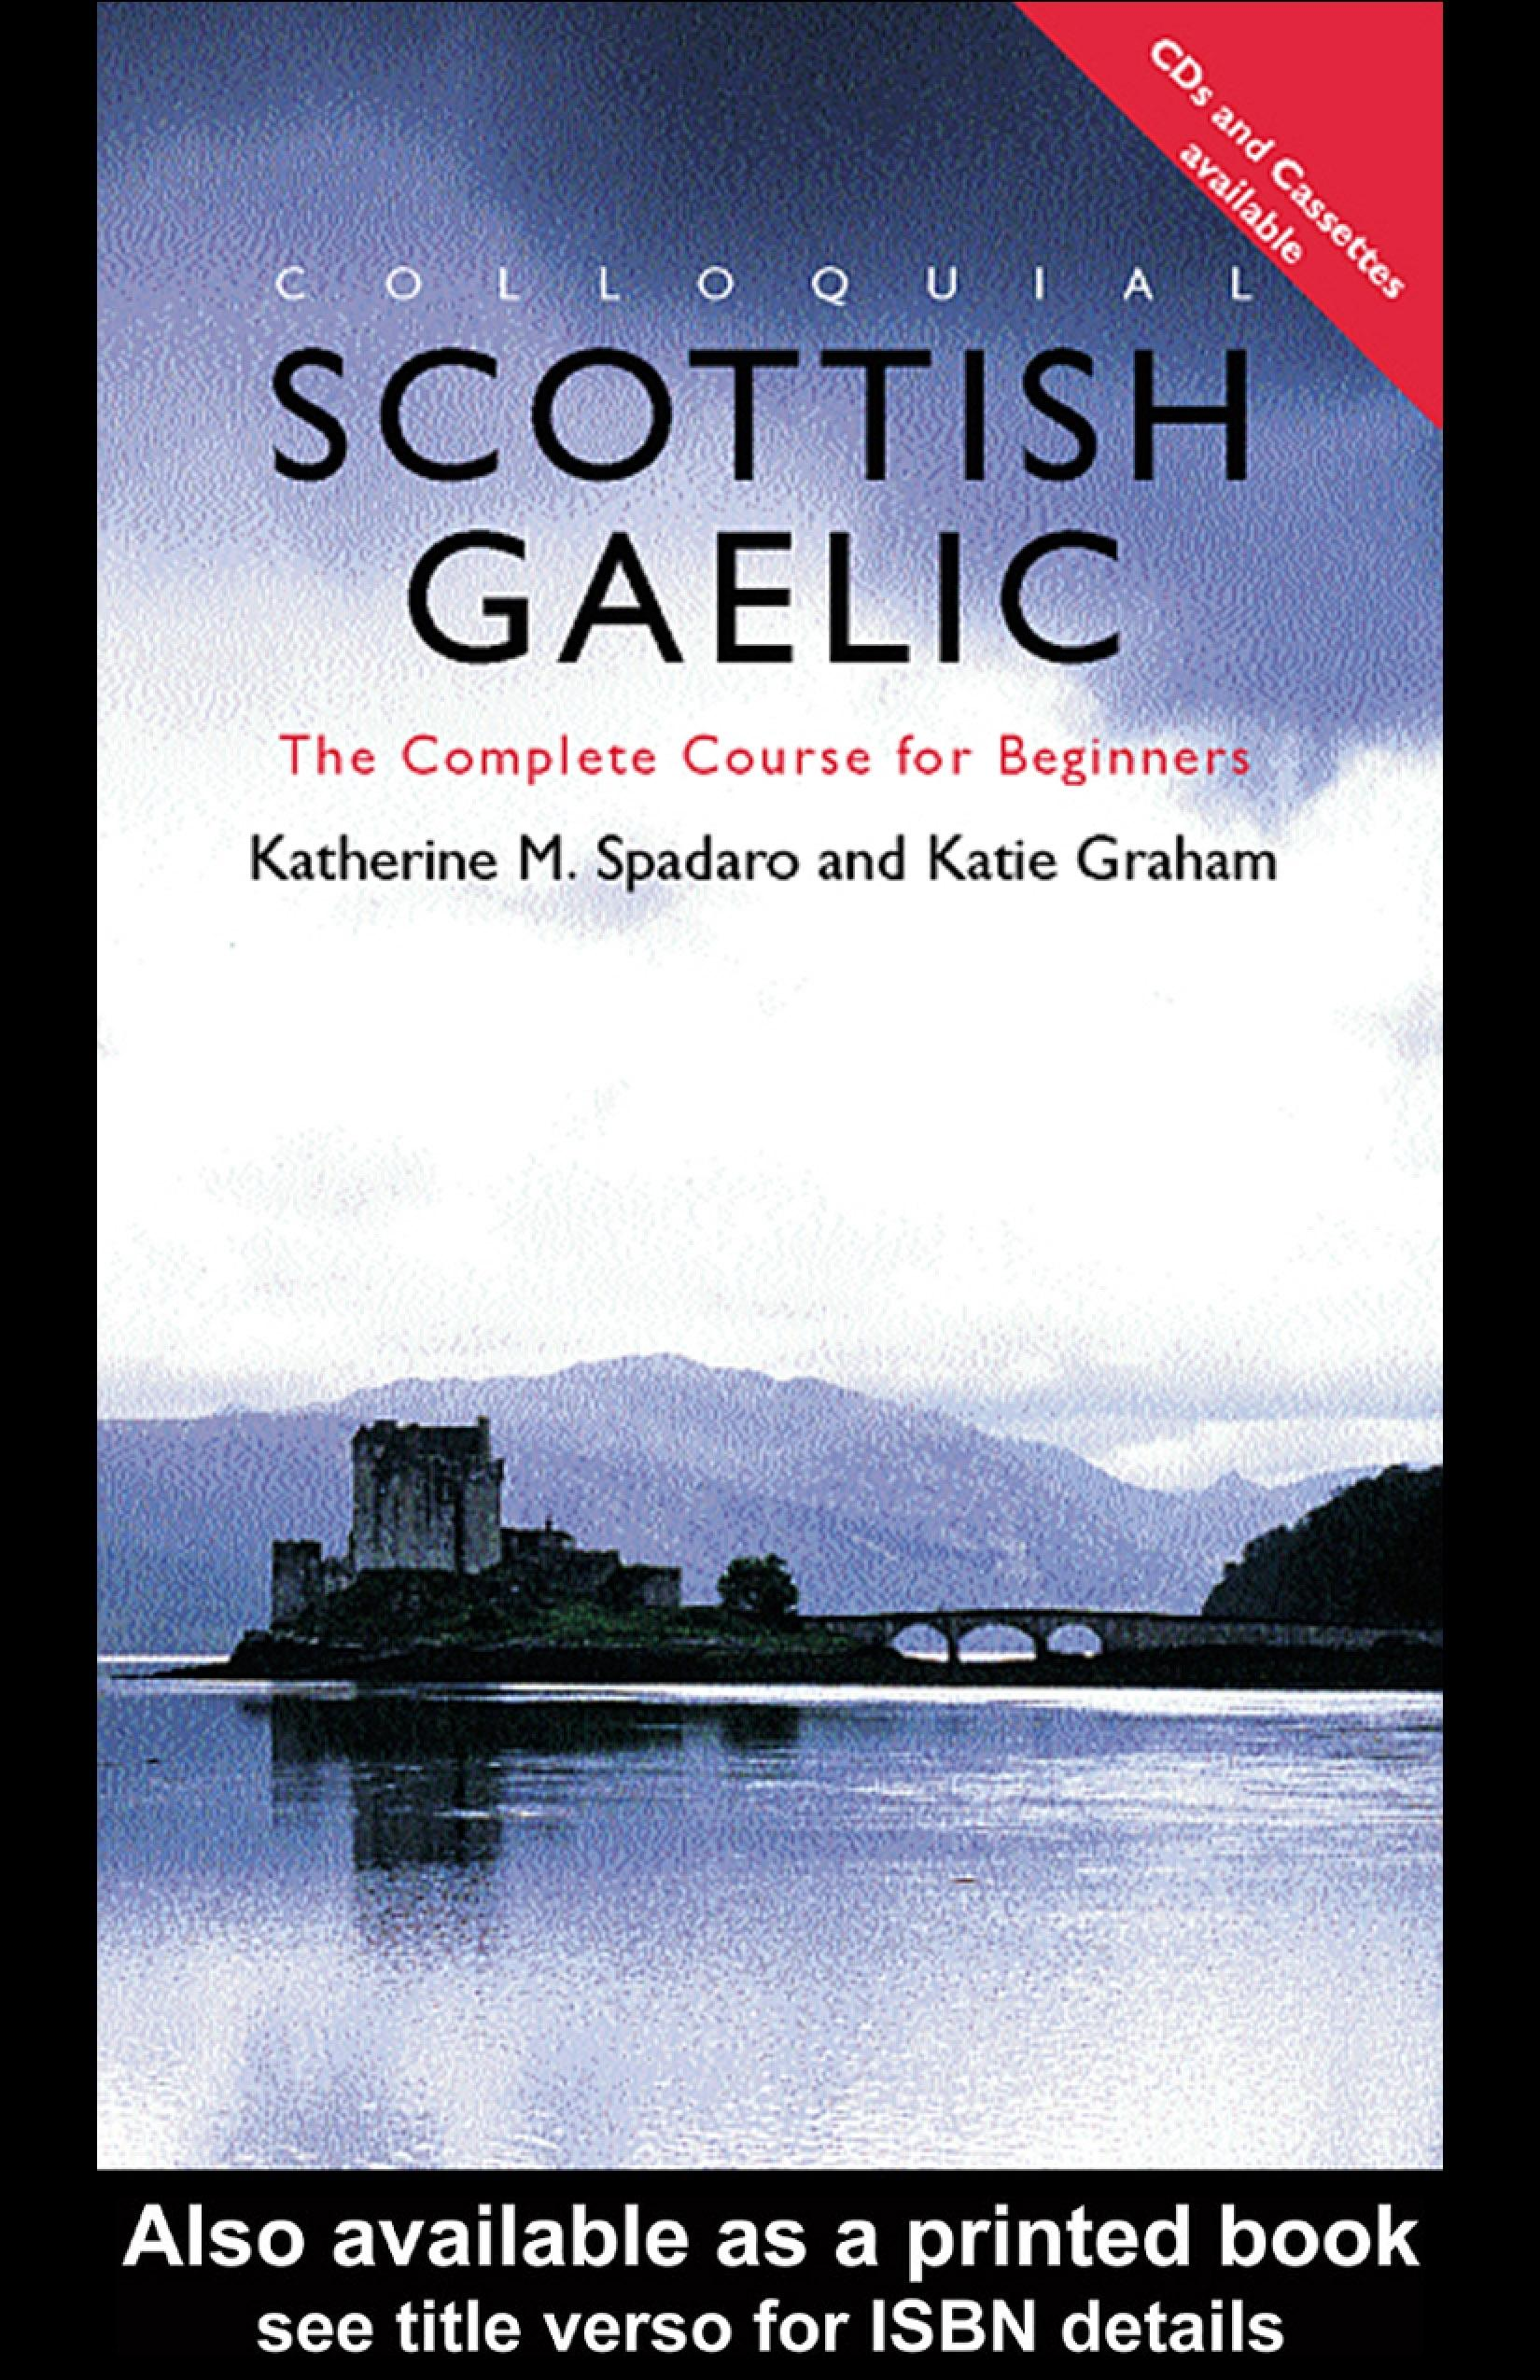 Colloquial Scottish Gaelic: The Complete Course for Beginners EB9780203987490